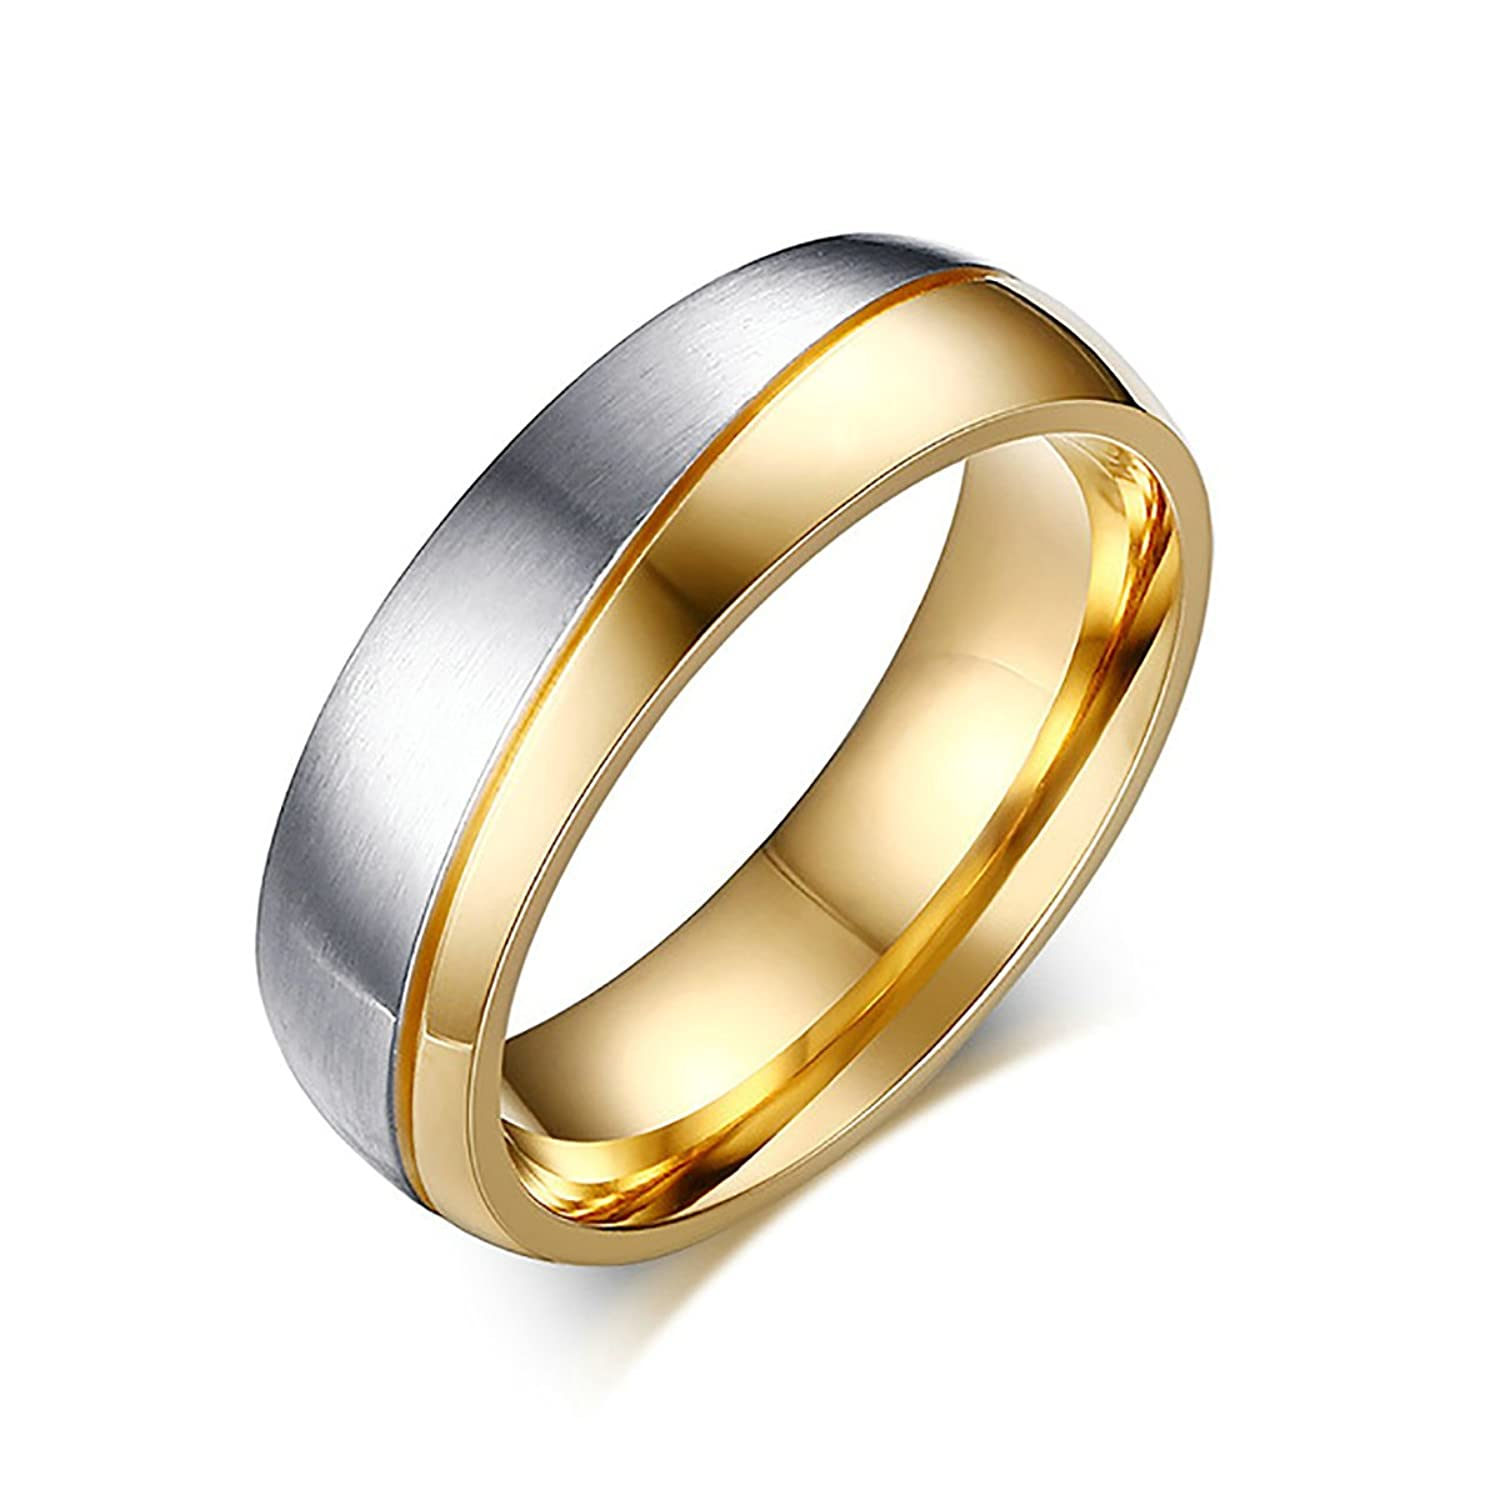 Amazoncom Tianyi Stainless Steel 18K Gold Plated Wedding